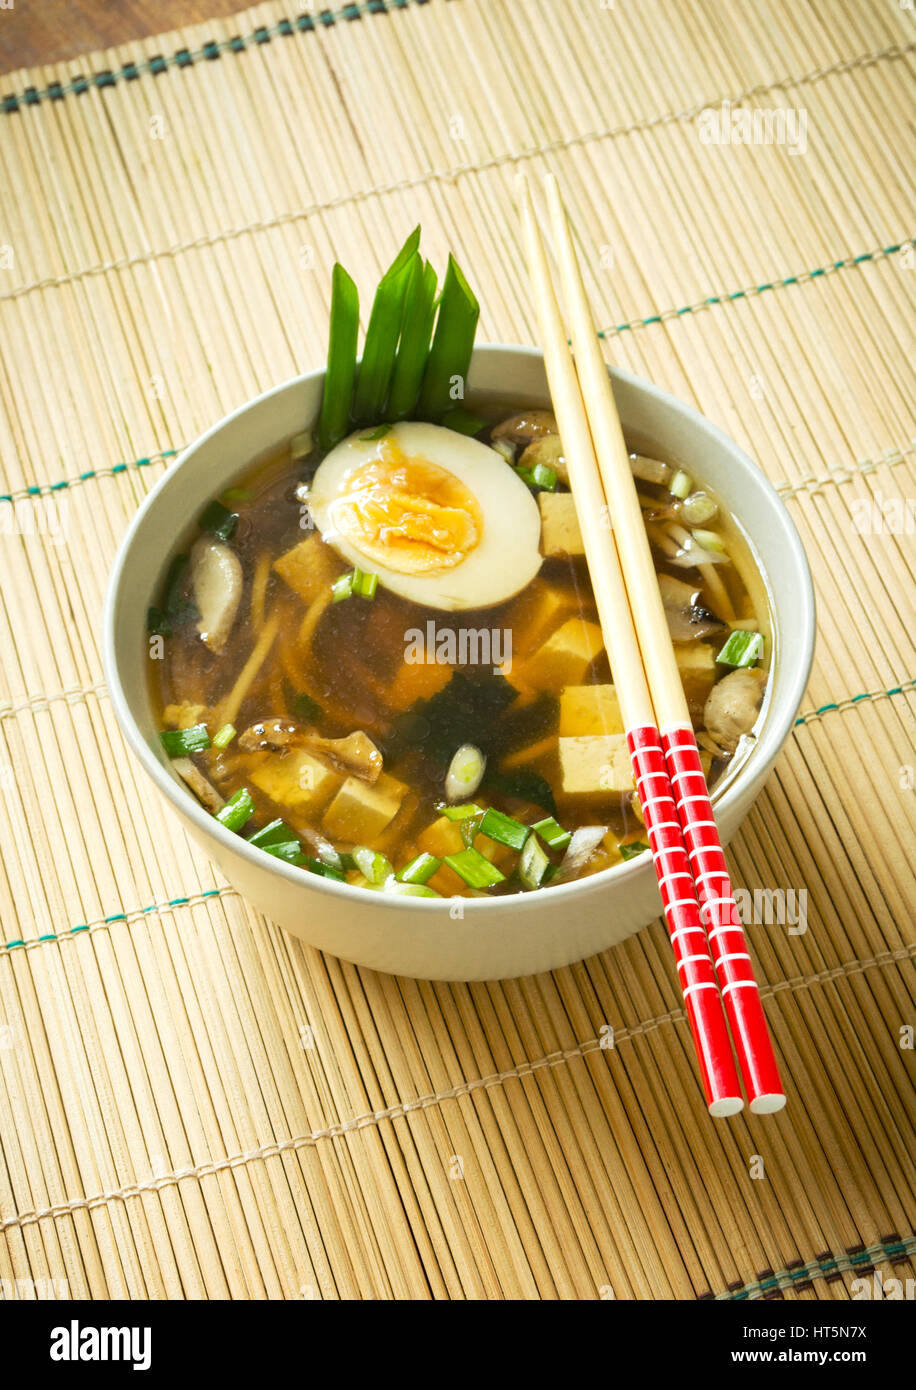 Miso soup in white bowl on bamboo mat - Stock Image